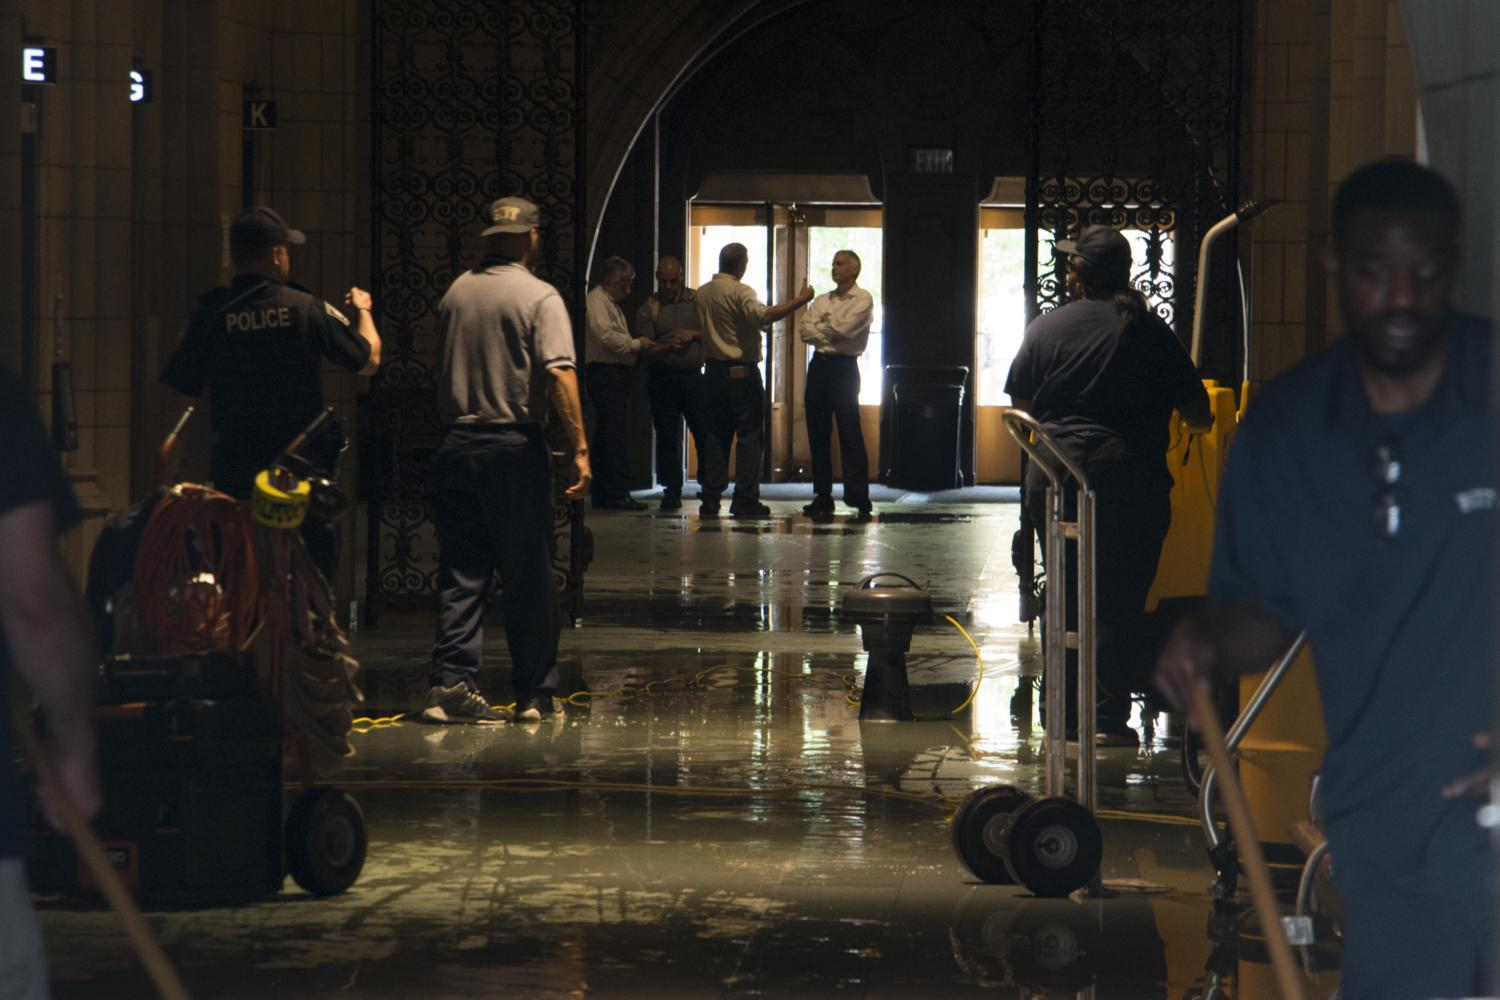 Workers begin to clean up the Cathedral of Learning after a water main broke on the third floor Monday morning. (Photo by John Hamilton / Managing Editor)